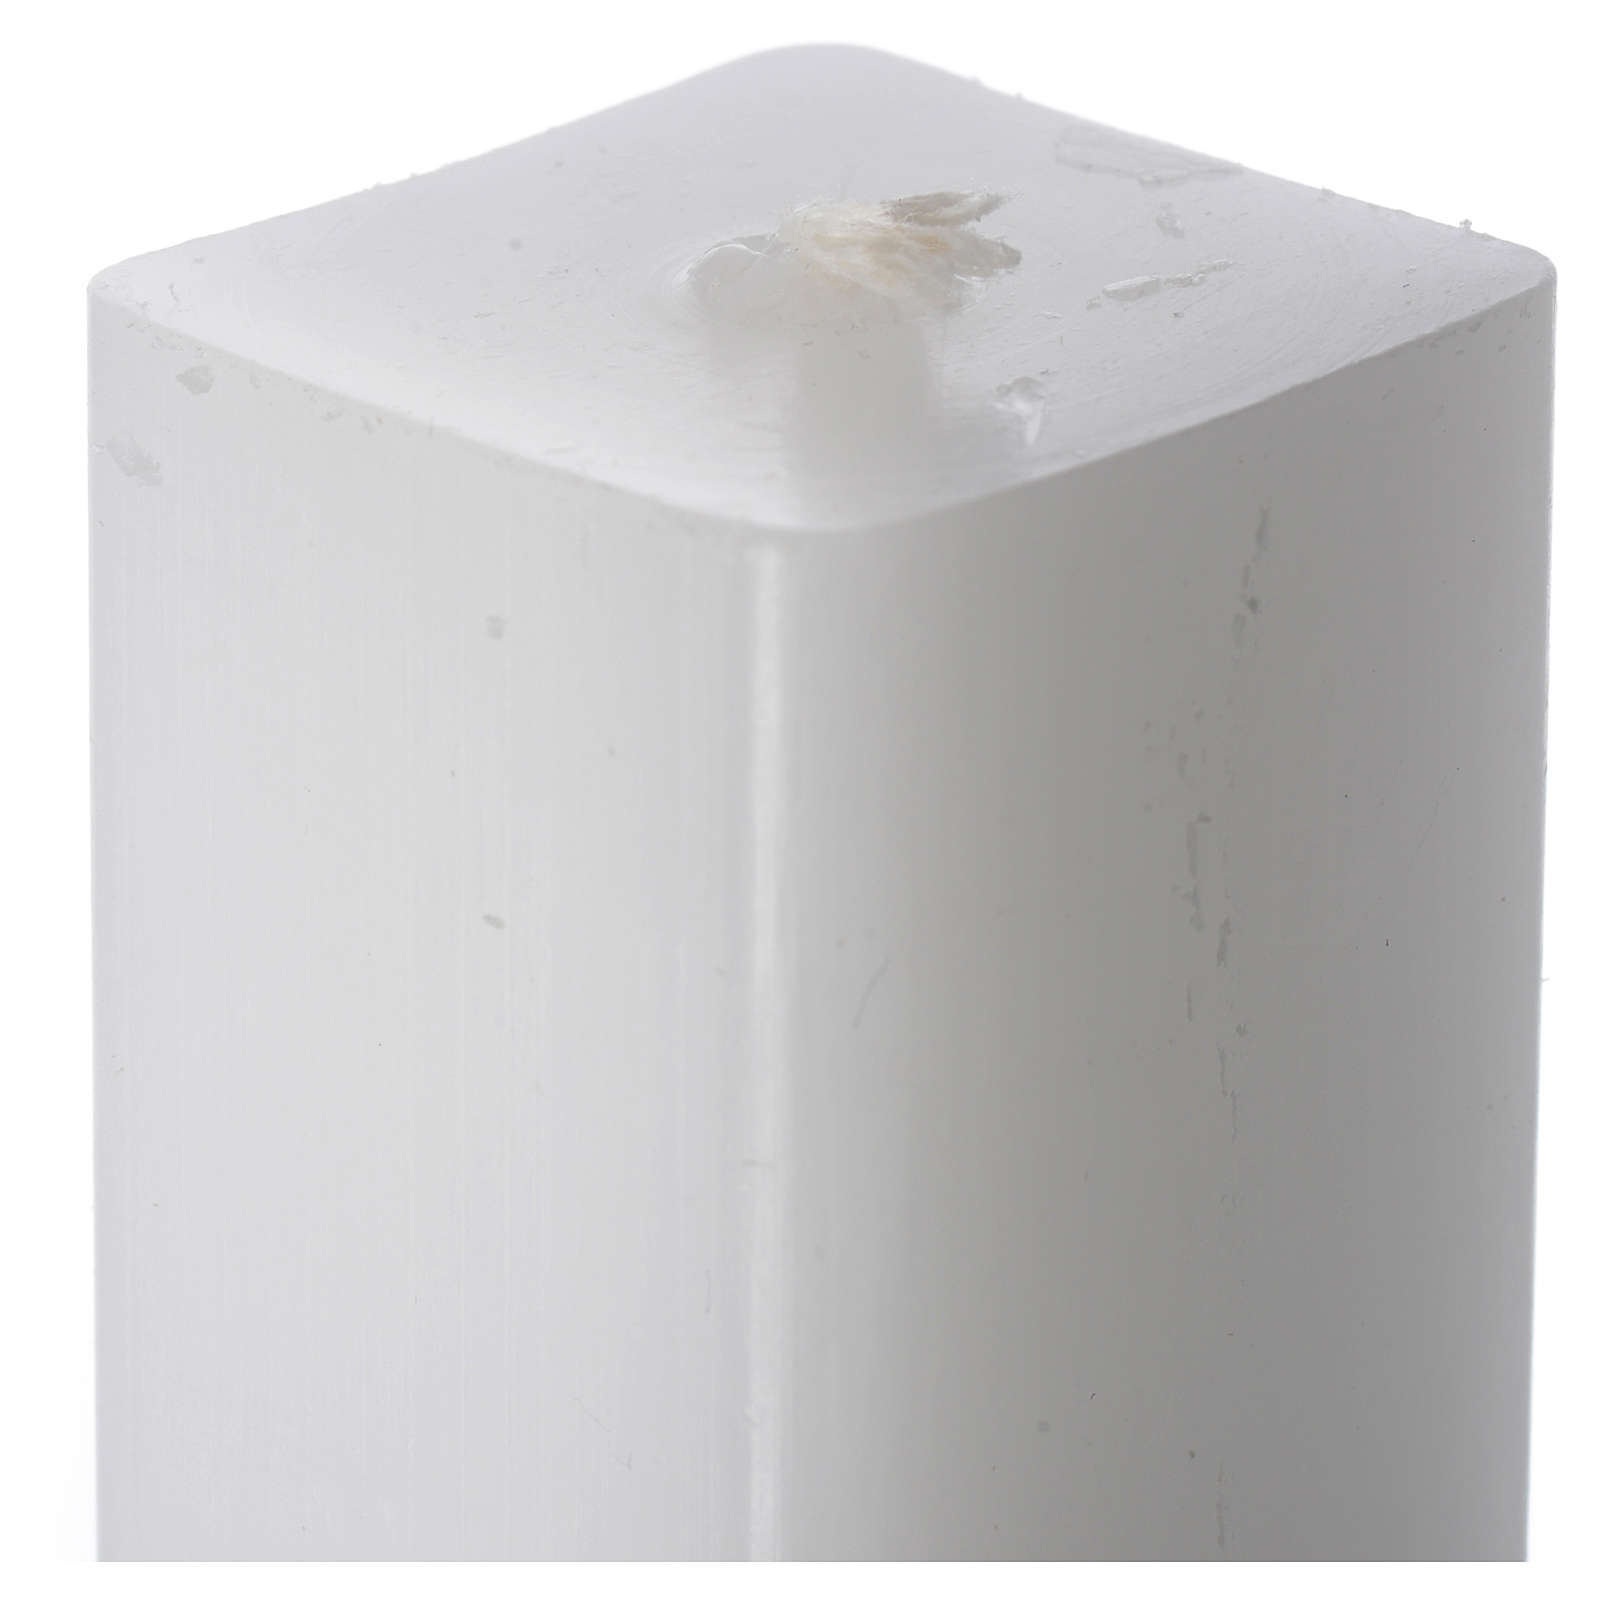 Bougie blanche carrée 600x30x30mm (lot) 3